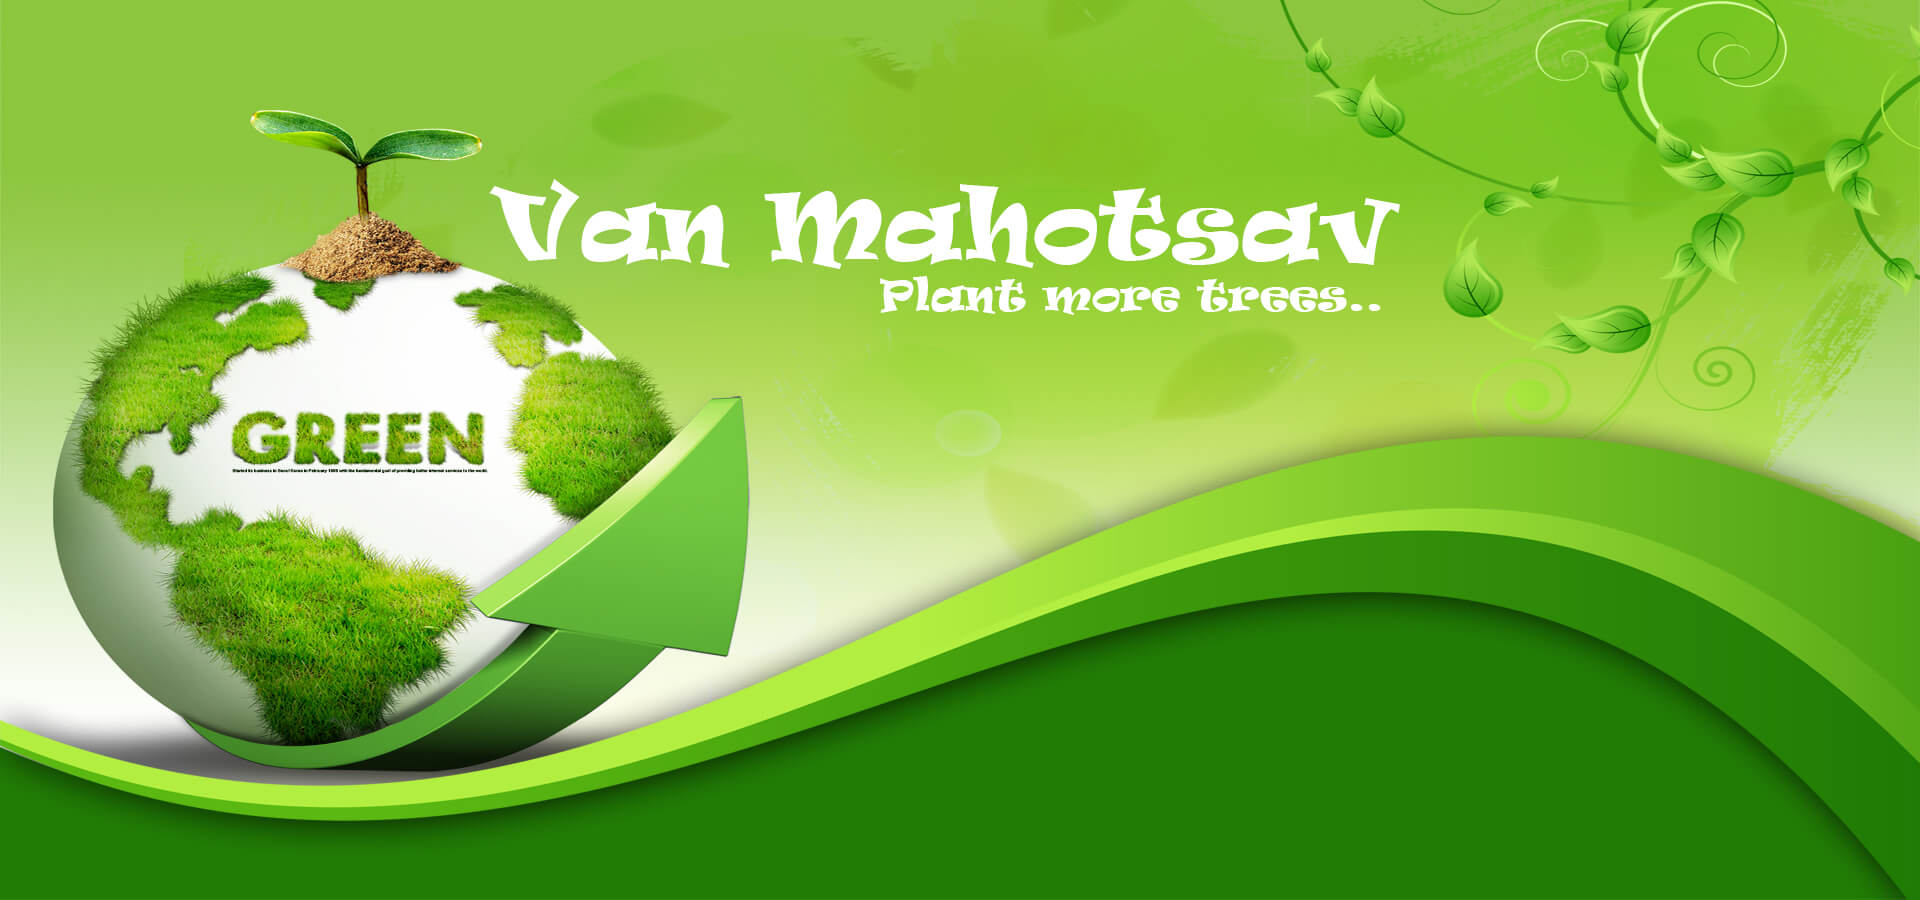 van mahotsav day planting tree save earth green nature image picture